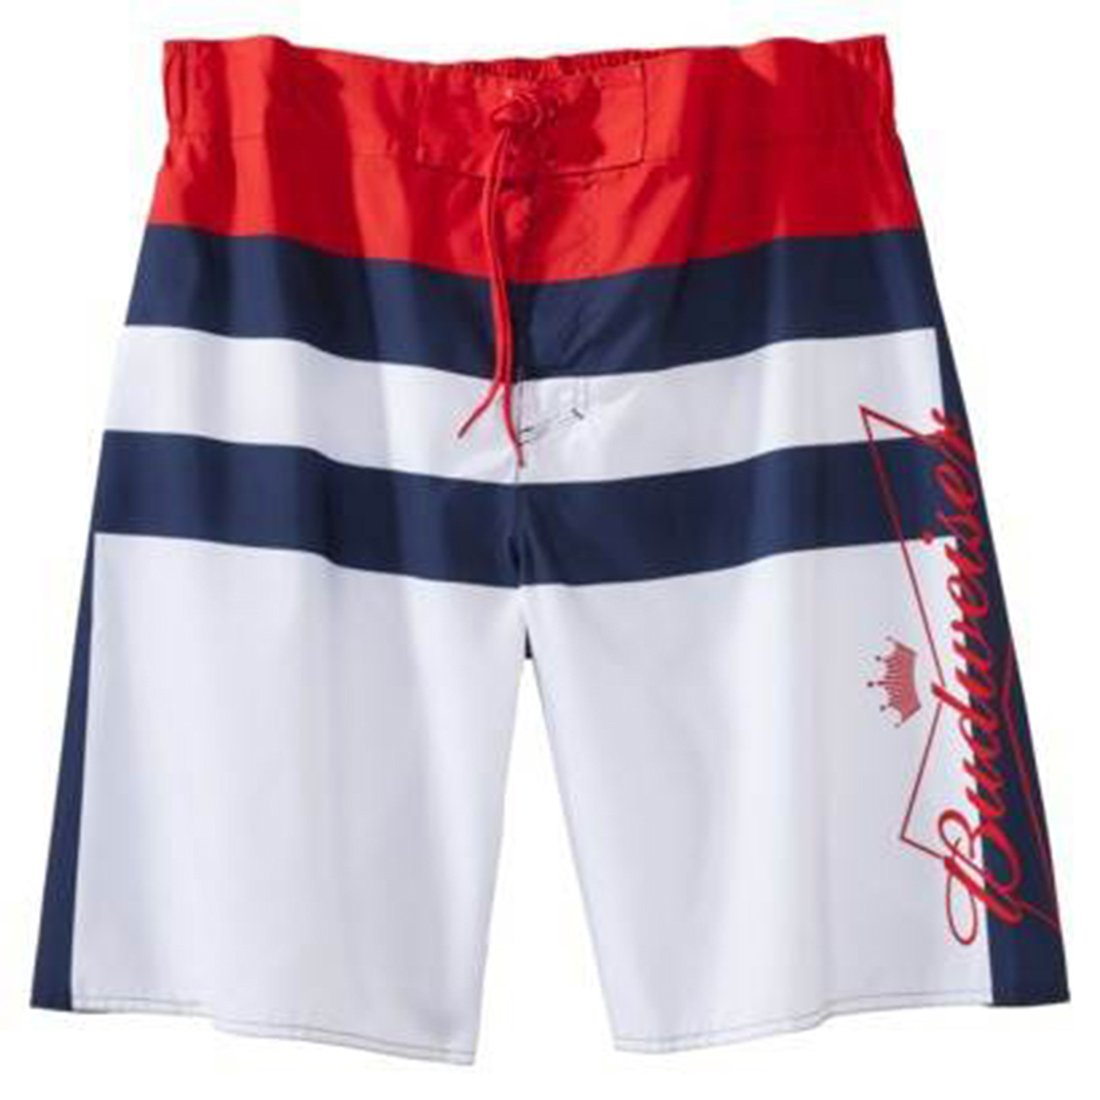 Budweiser Nautical Striped Board Shorts | S Toy Zany